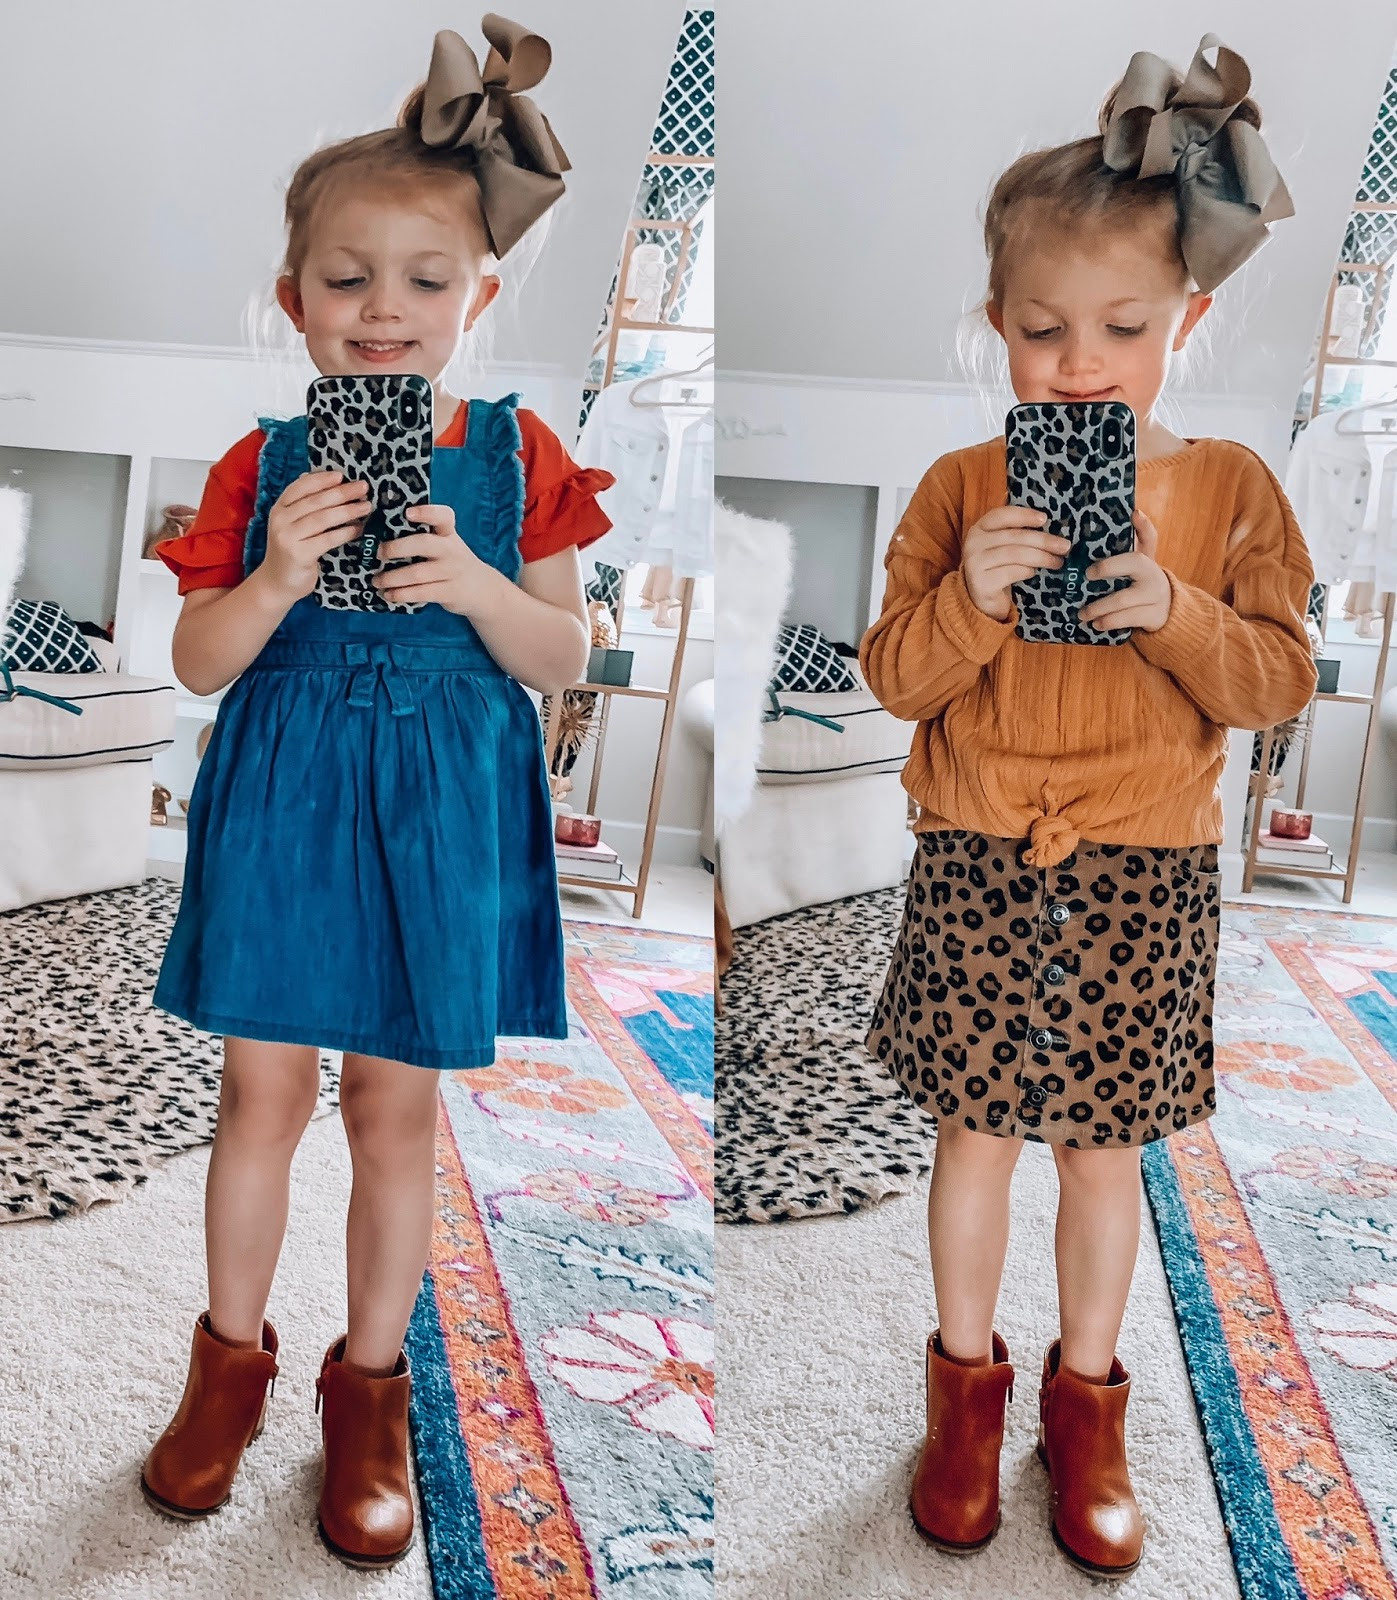 Target Fall 2019 Finds for Kids - Madeline's Picks - Chambray Dress and Ruffle Top Set, Knot Front Top with Corduroy Leopard Skirt - Something Delightful Blog #Kidsfallfashion